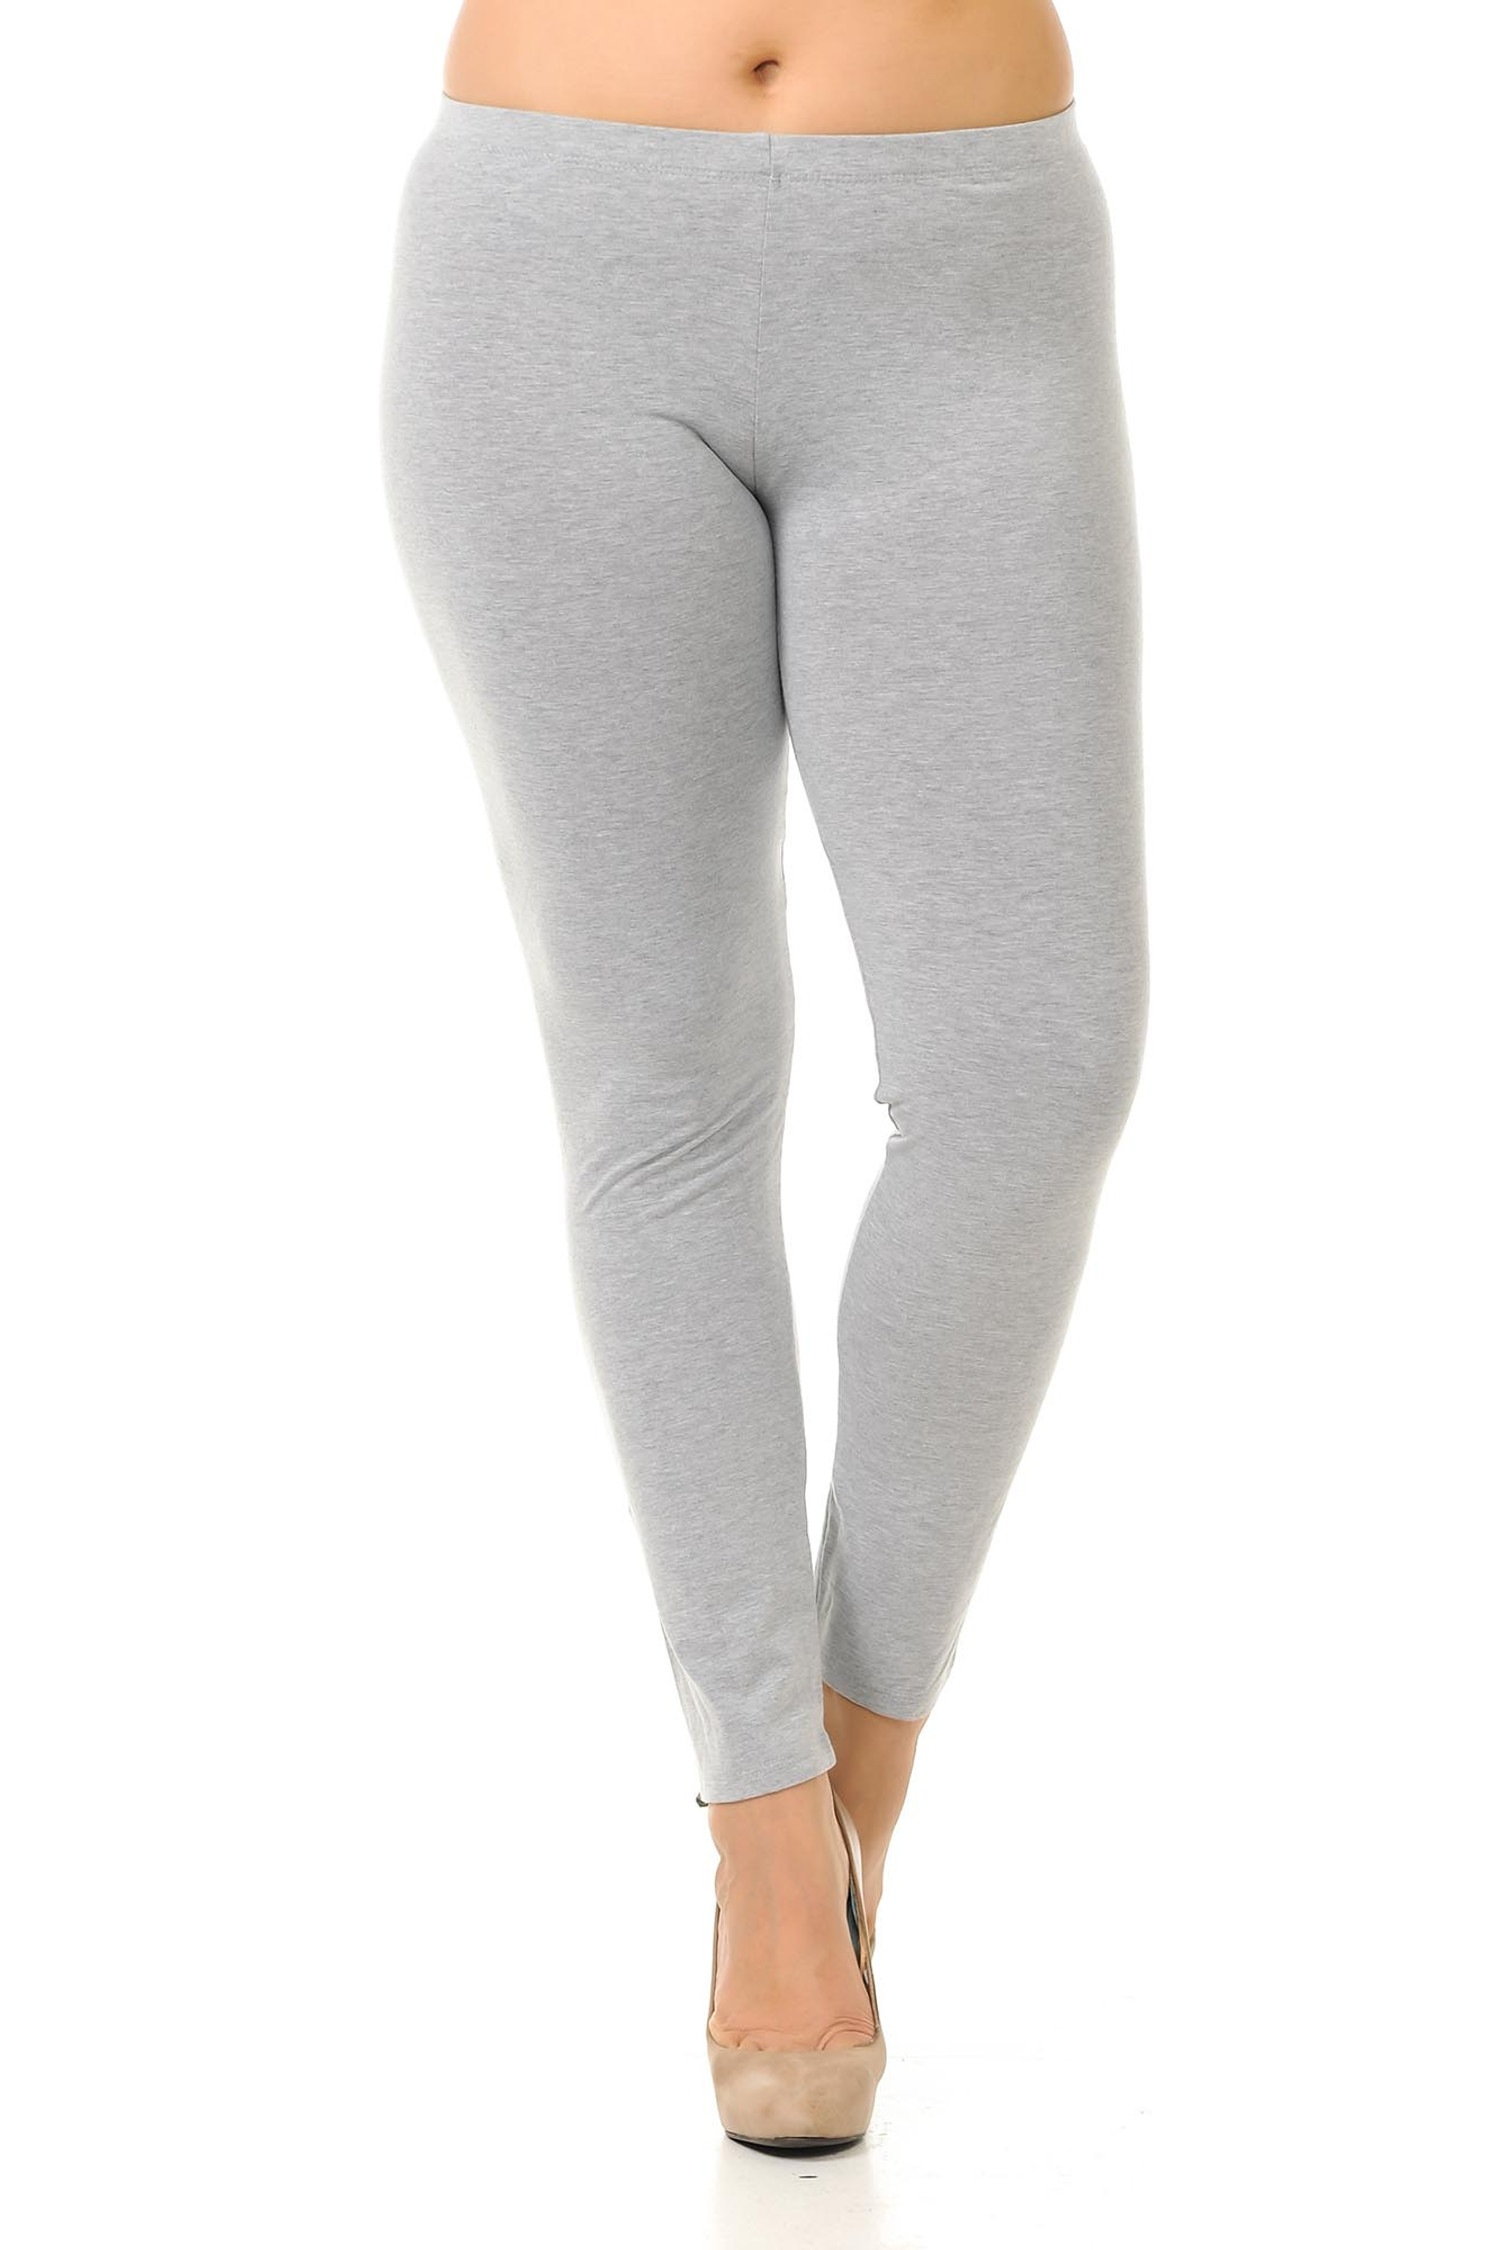 Front crossed foot image of plus size heather gray full length cotton leggings made in the USA